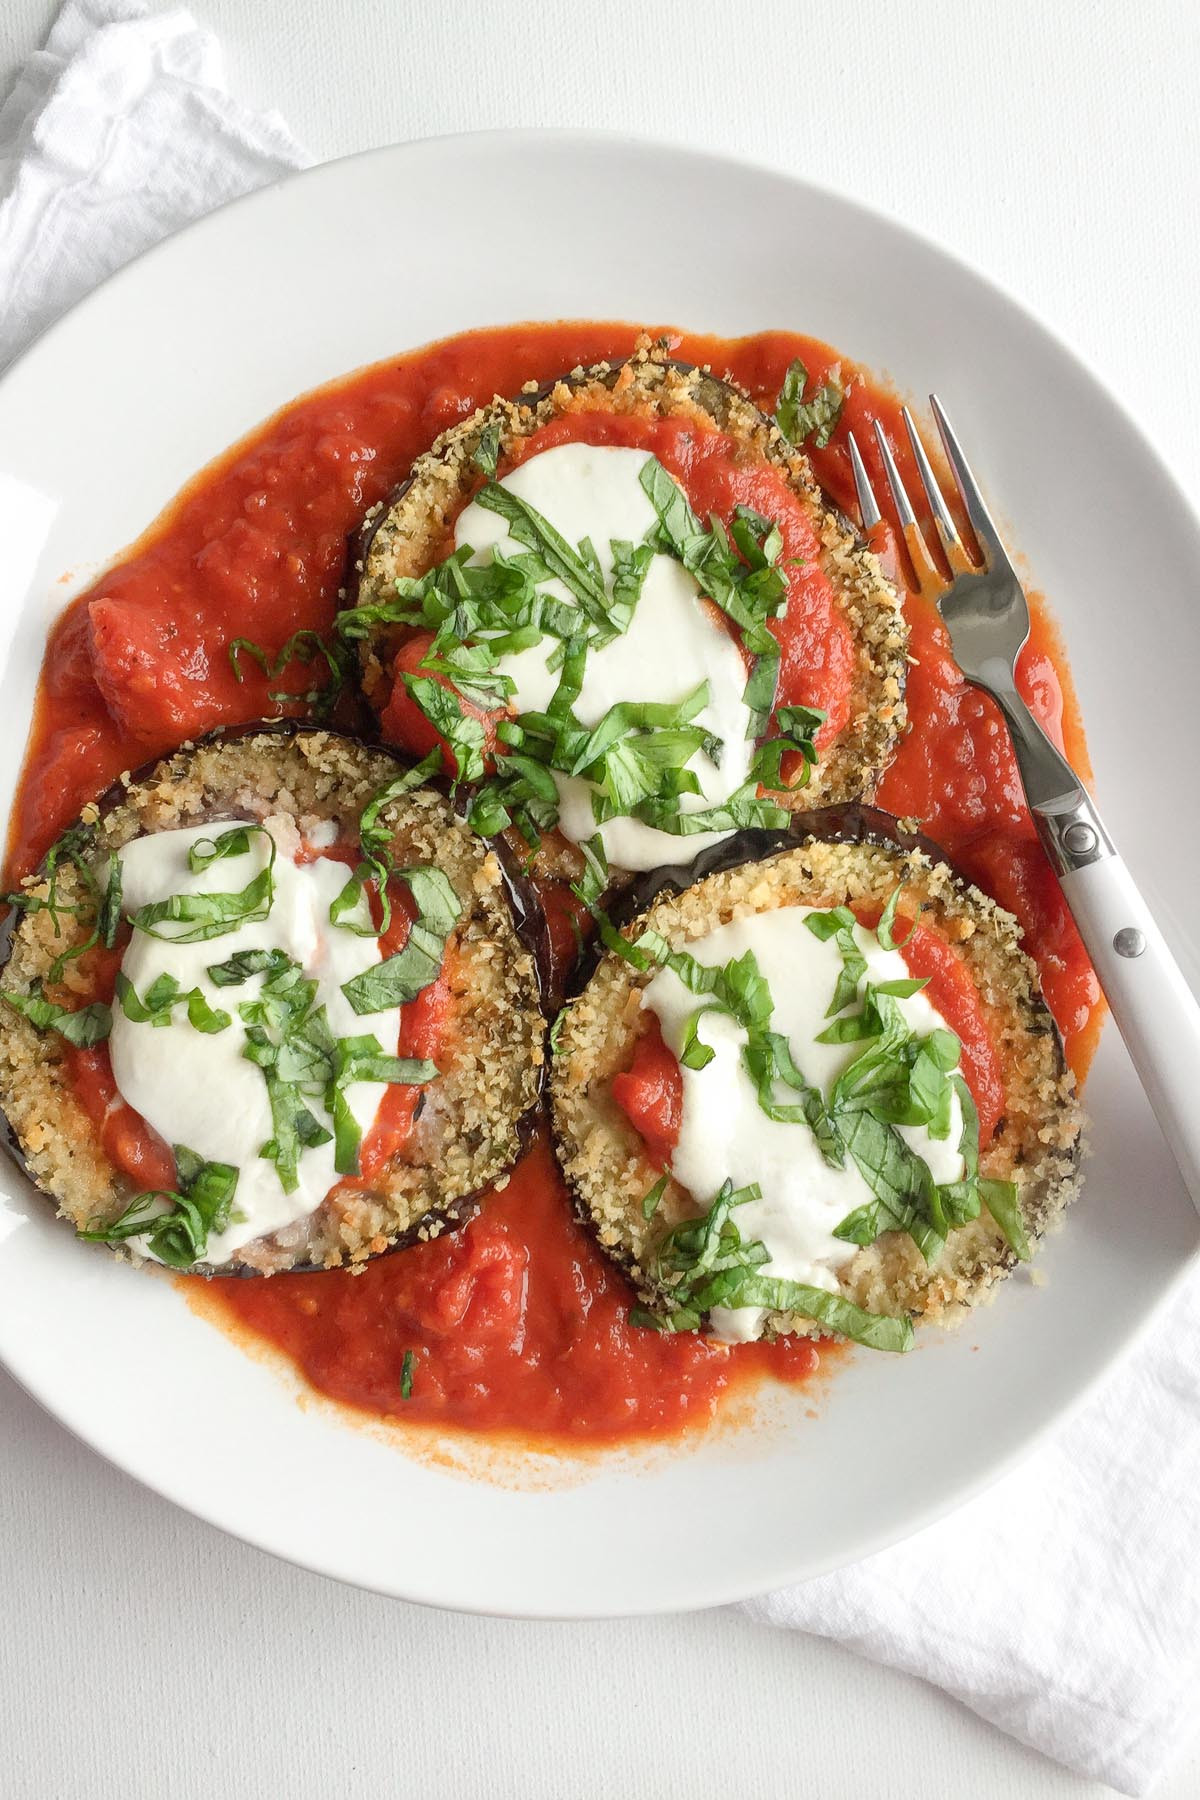 Eggplant Recipes Healthy the top 20 Ideas About Healthy Baked Eggplant Parmesan Recipe